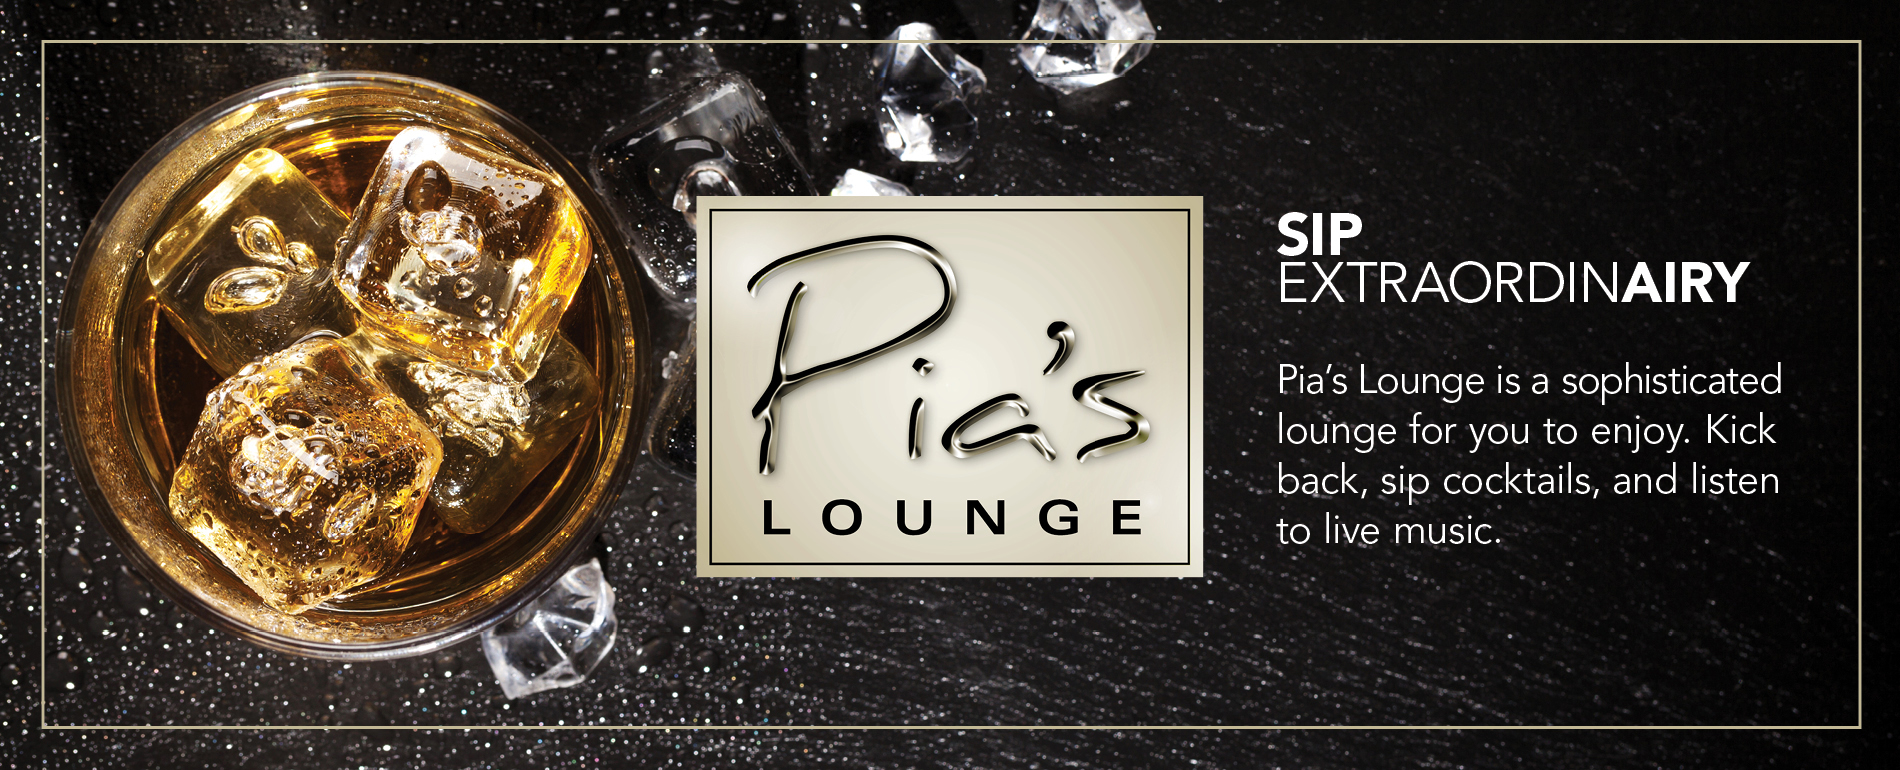 PIA's lounge drinks and live music